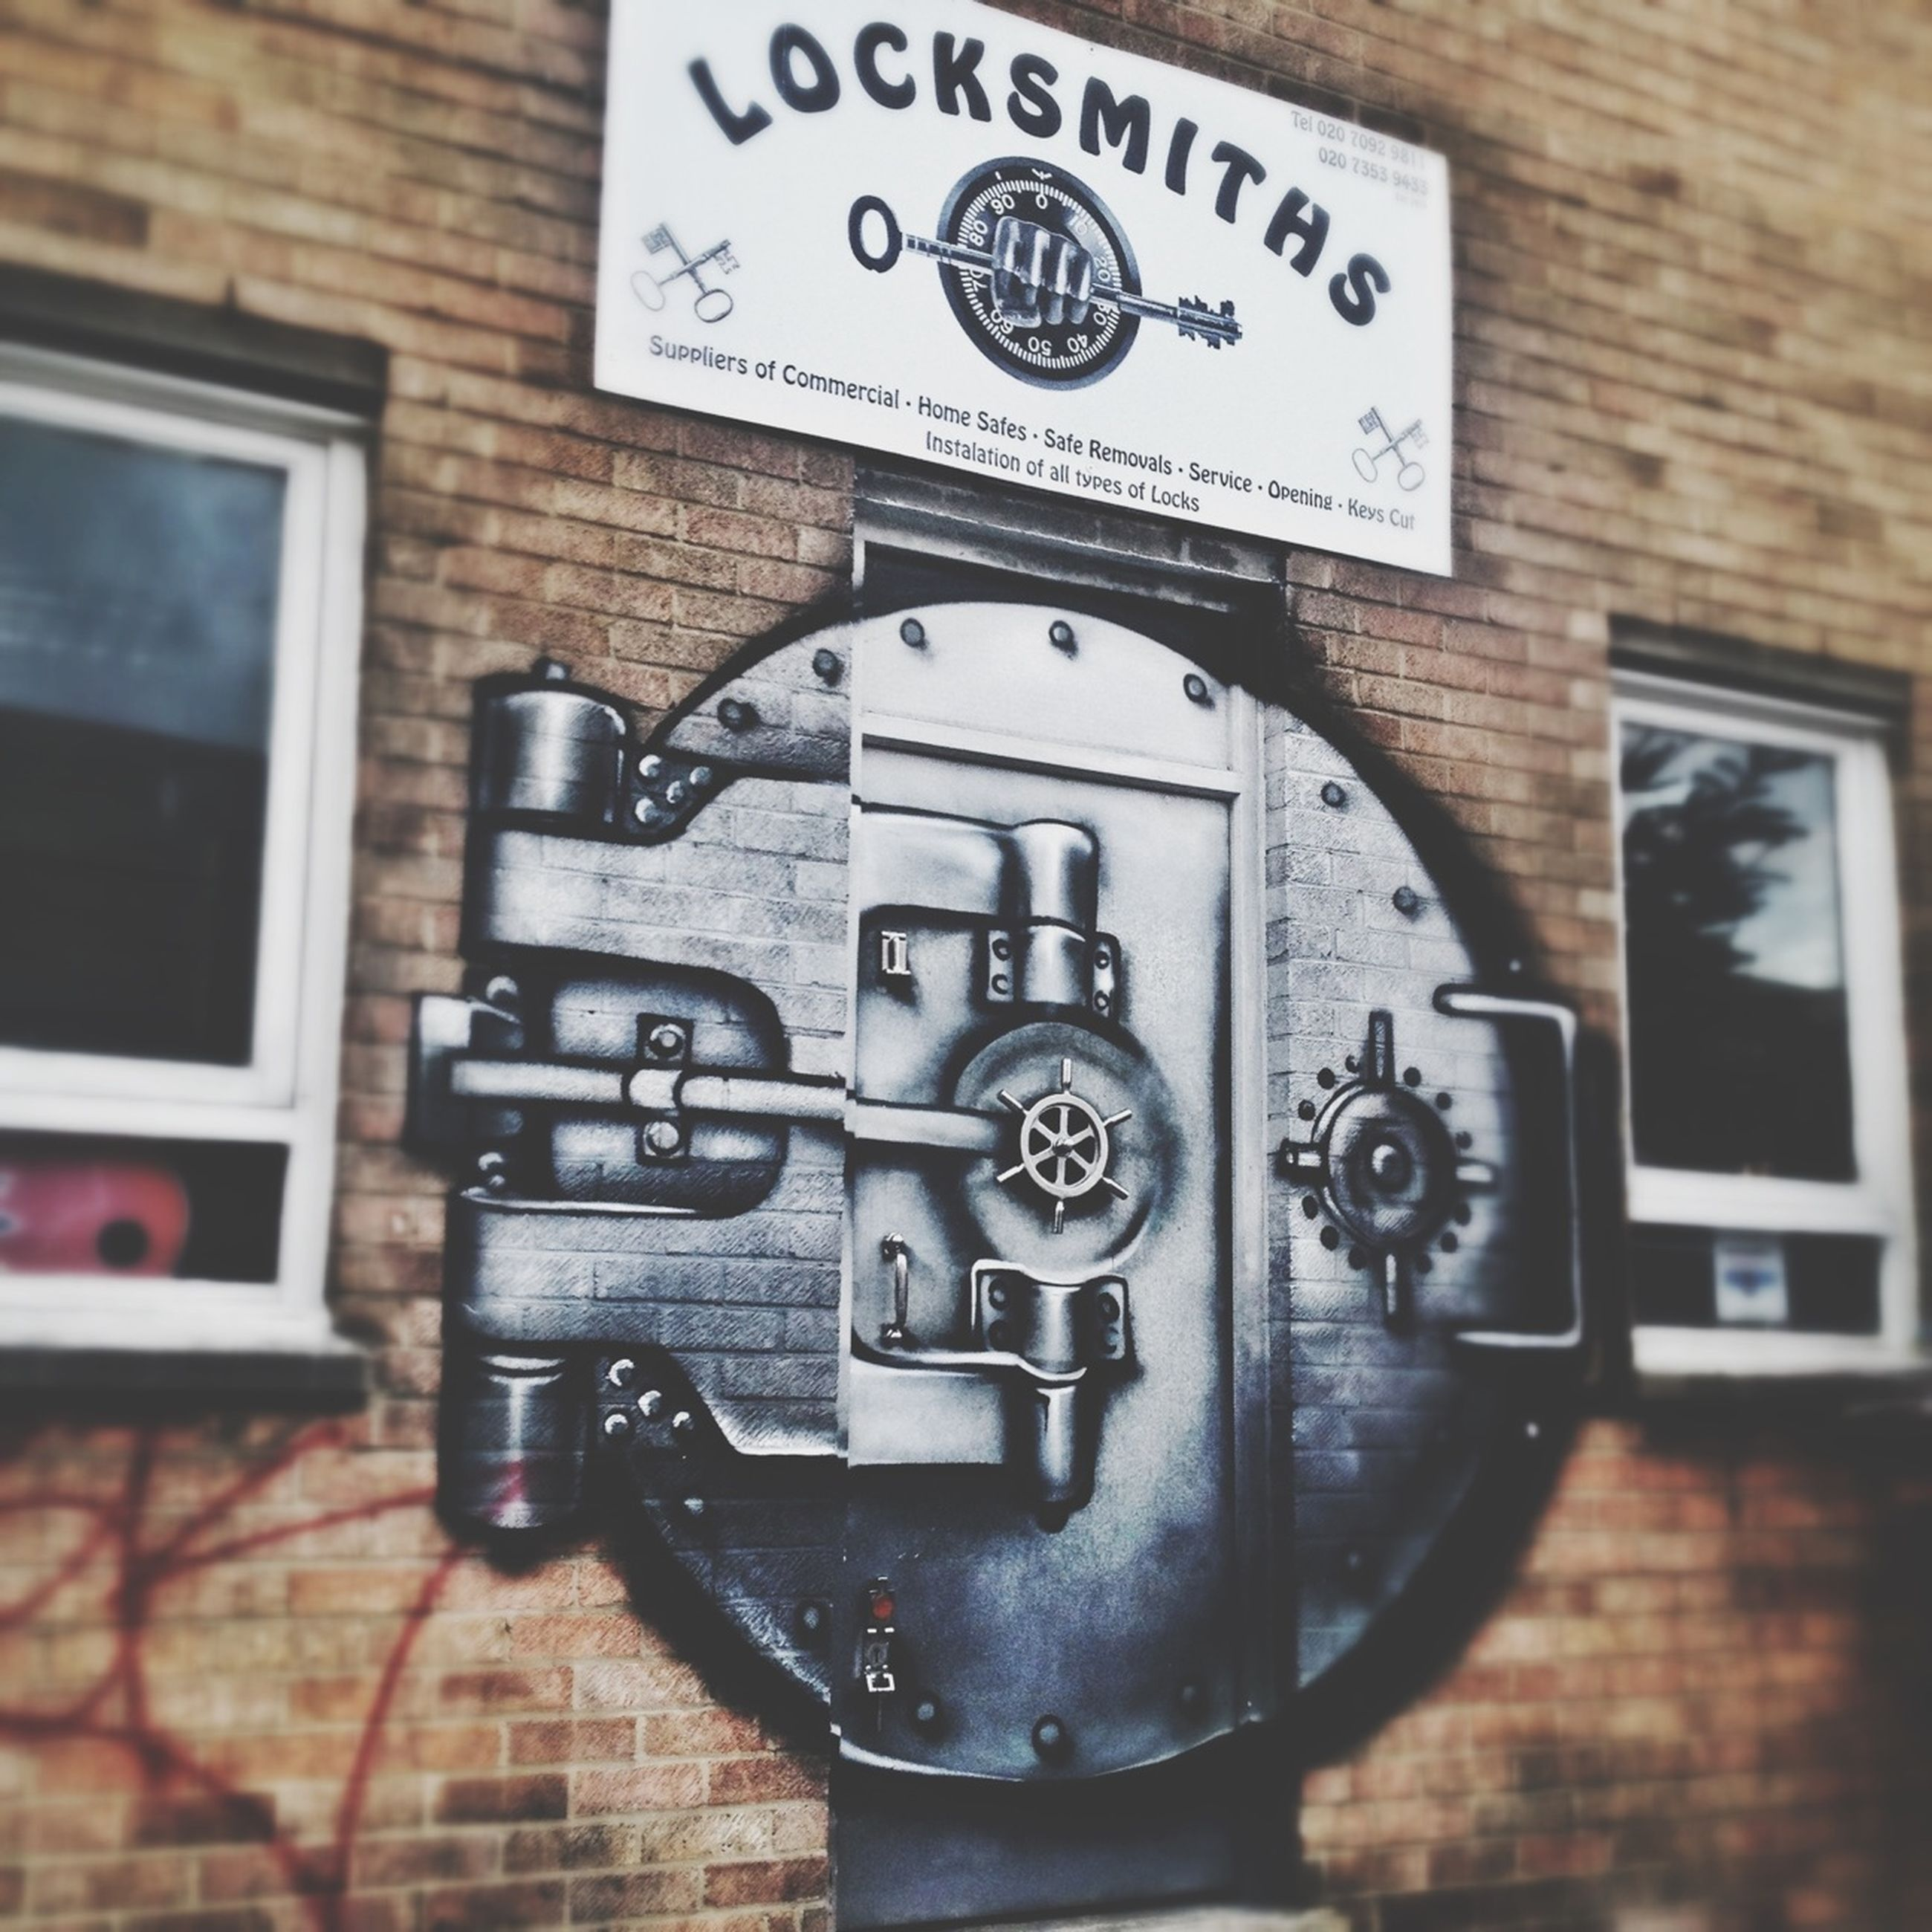 communication, text, technology, retro styled, old-fashioned, indoors, clock, western script, number, time, wall - building feature, close-up, architecture, photography themes, telephone, built structure, no people, antique, building exterior, connection